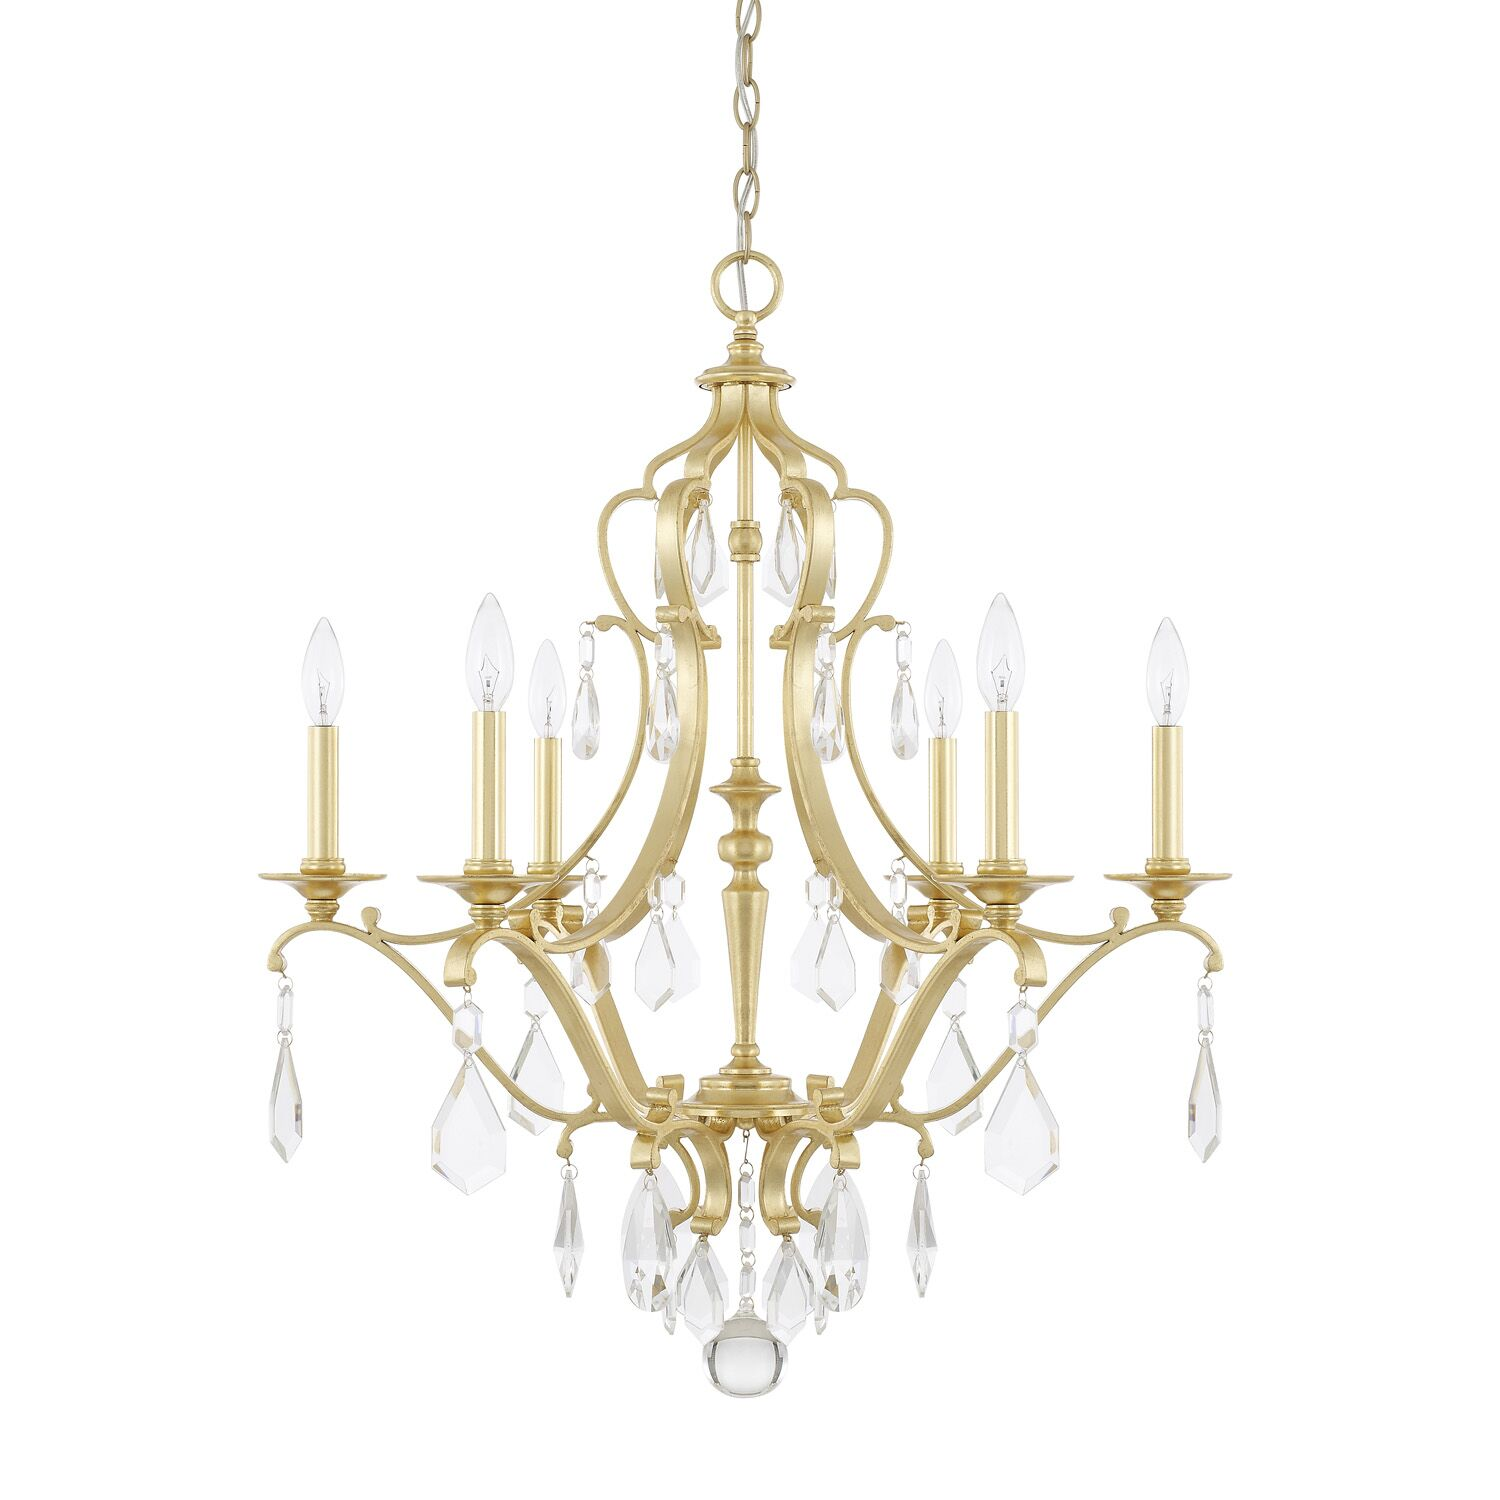 Destrey 6-Light Candle Style Chandelier